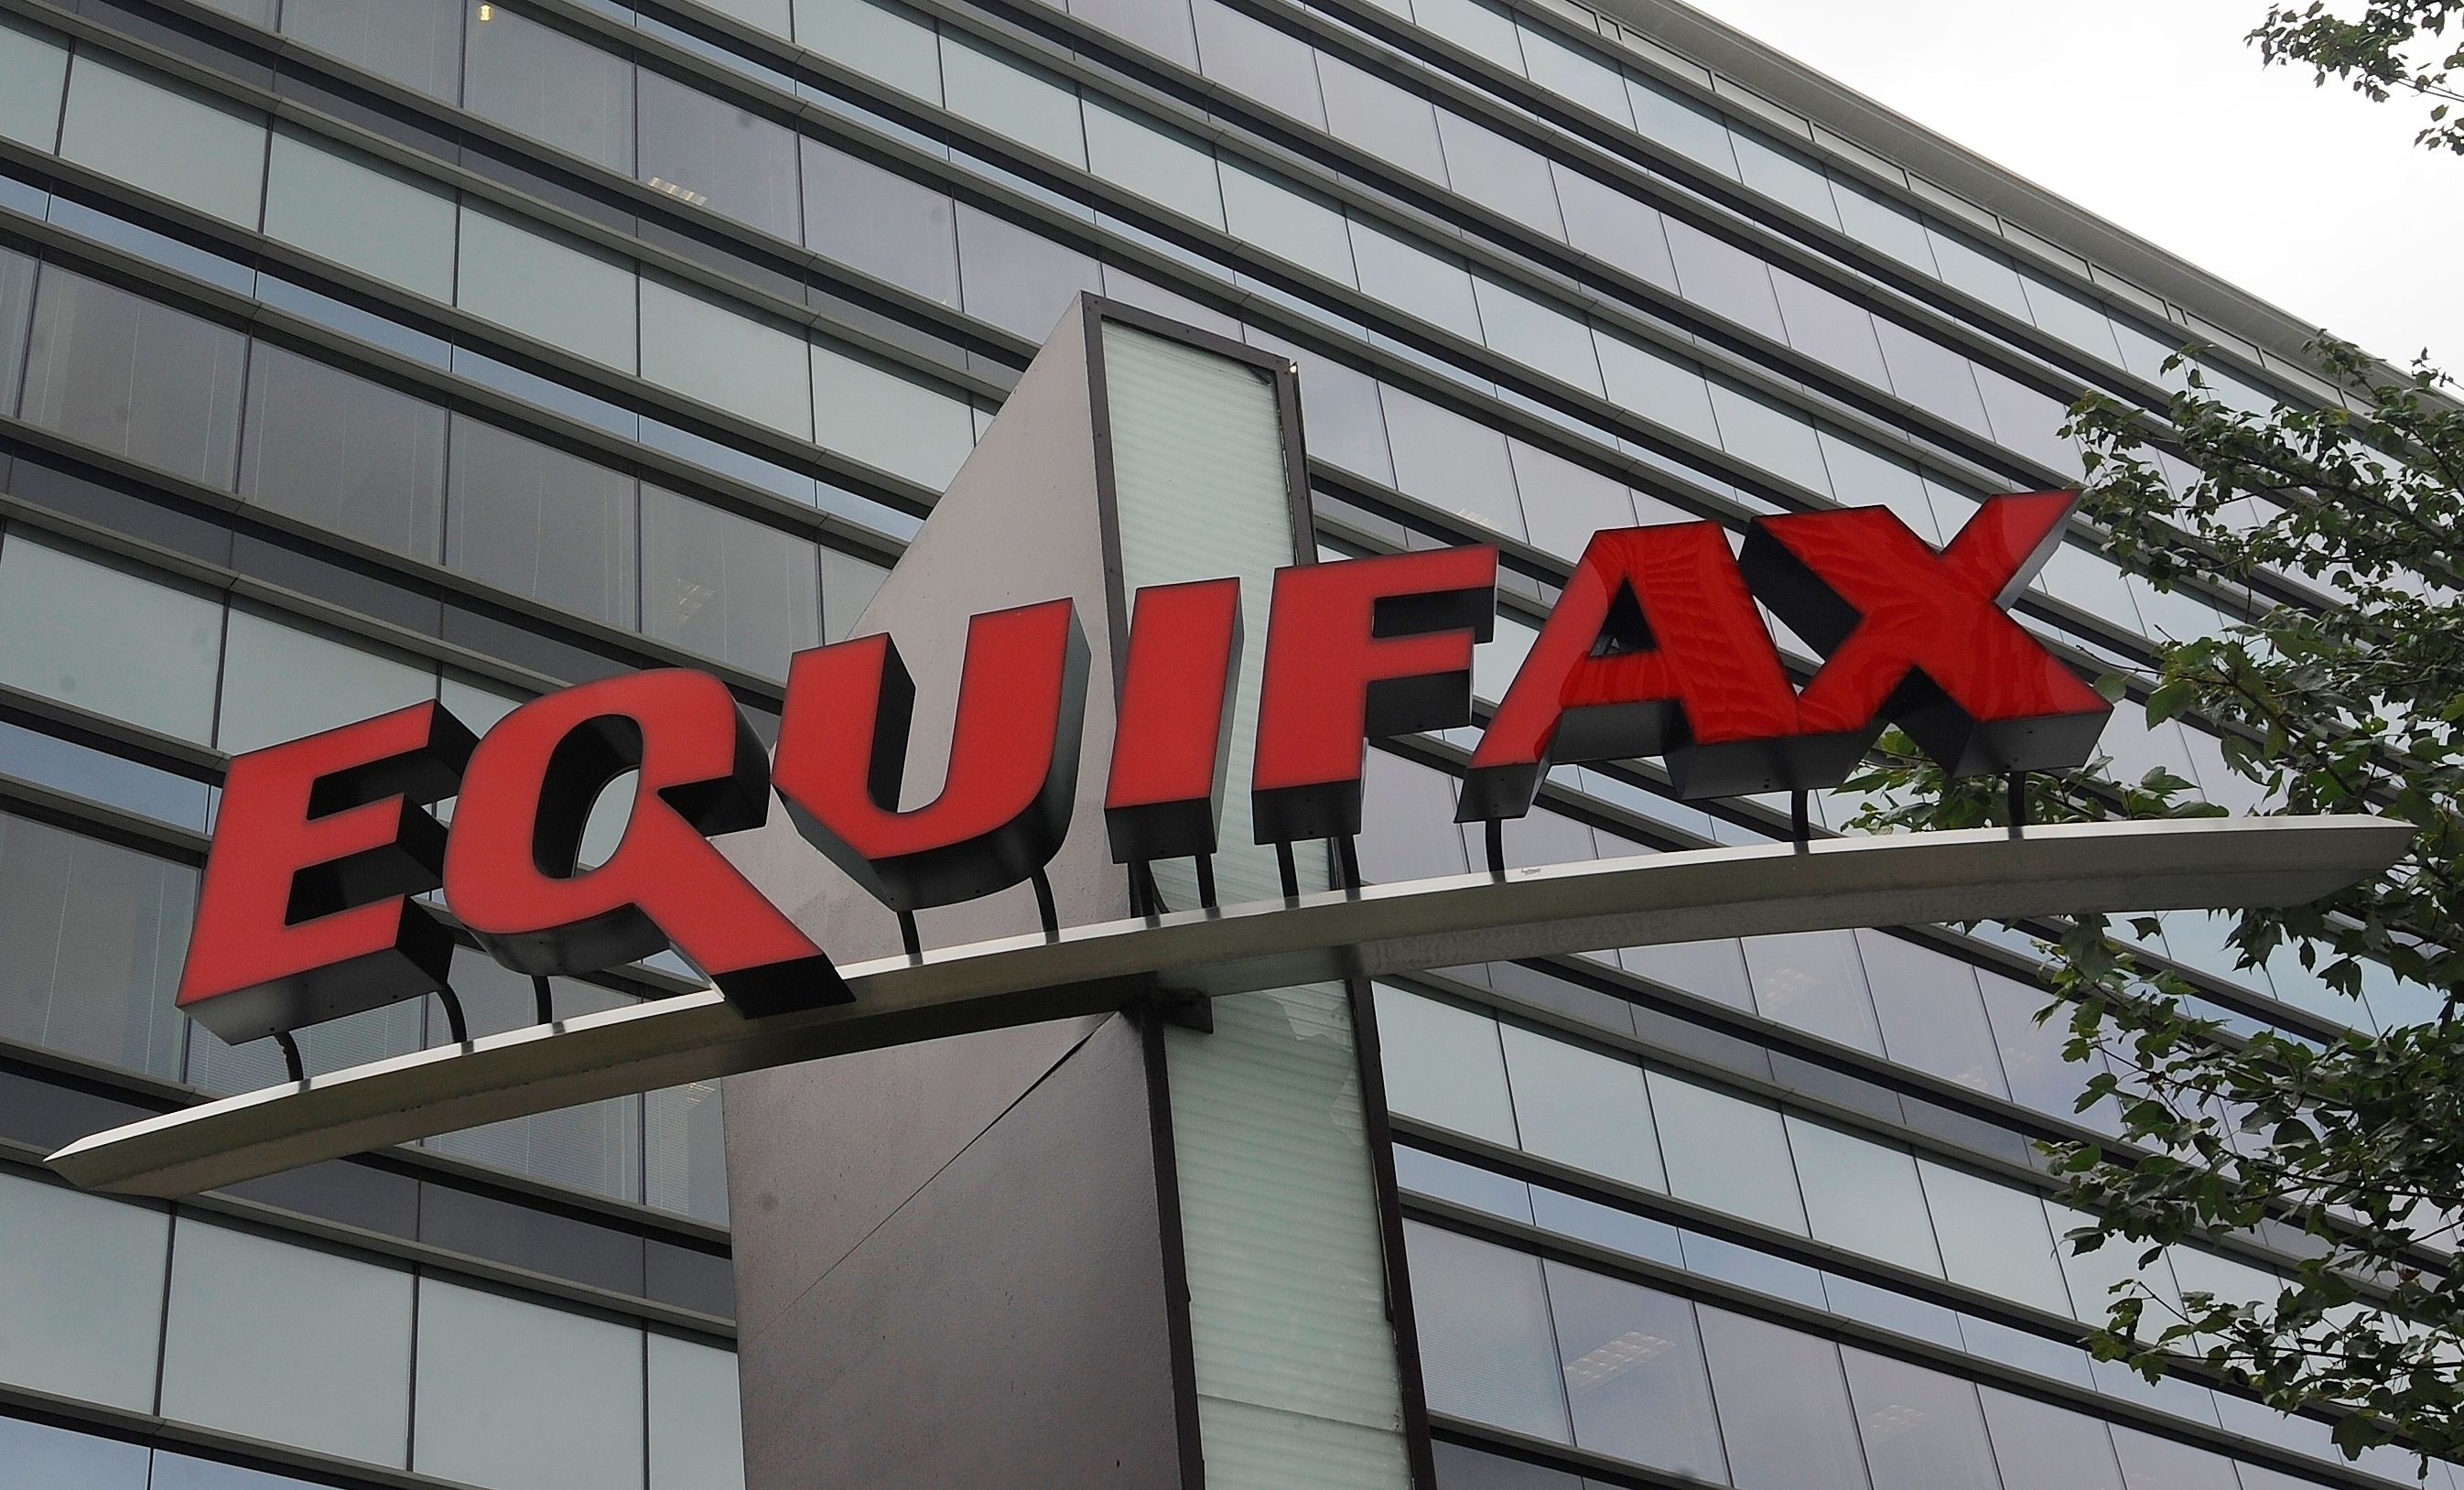 Former Equifax executive accused of insider trading before cyber breach announcement